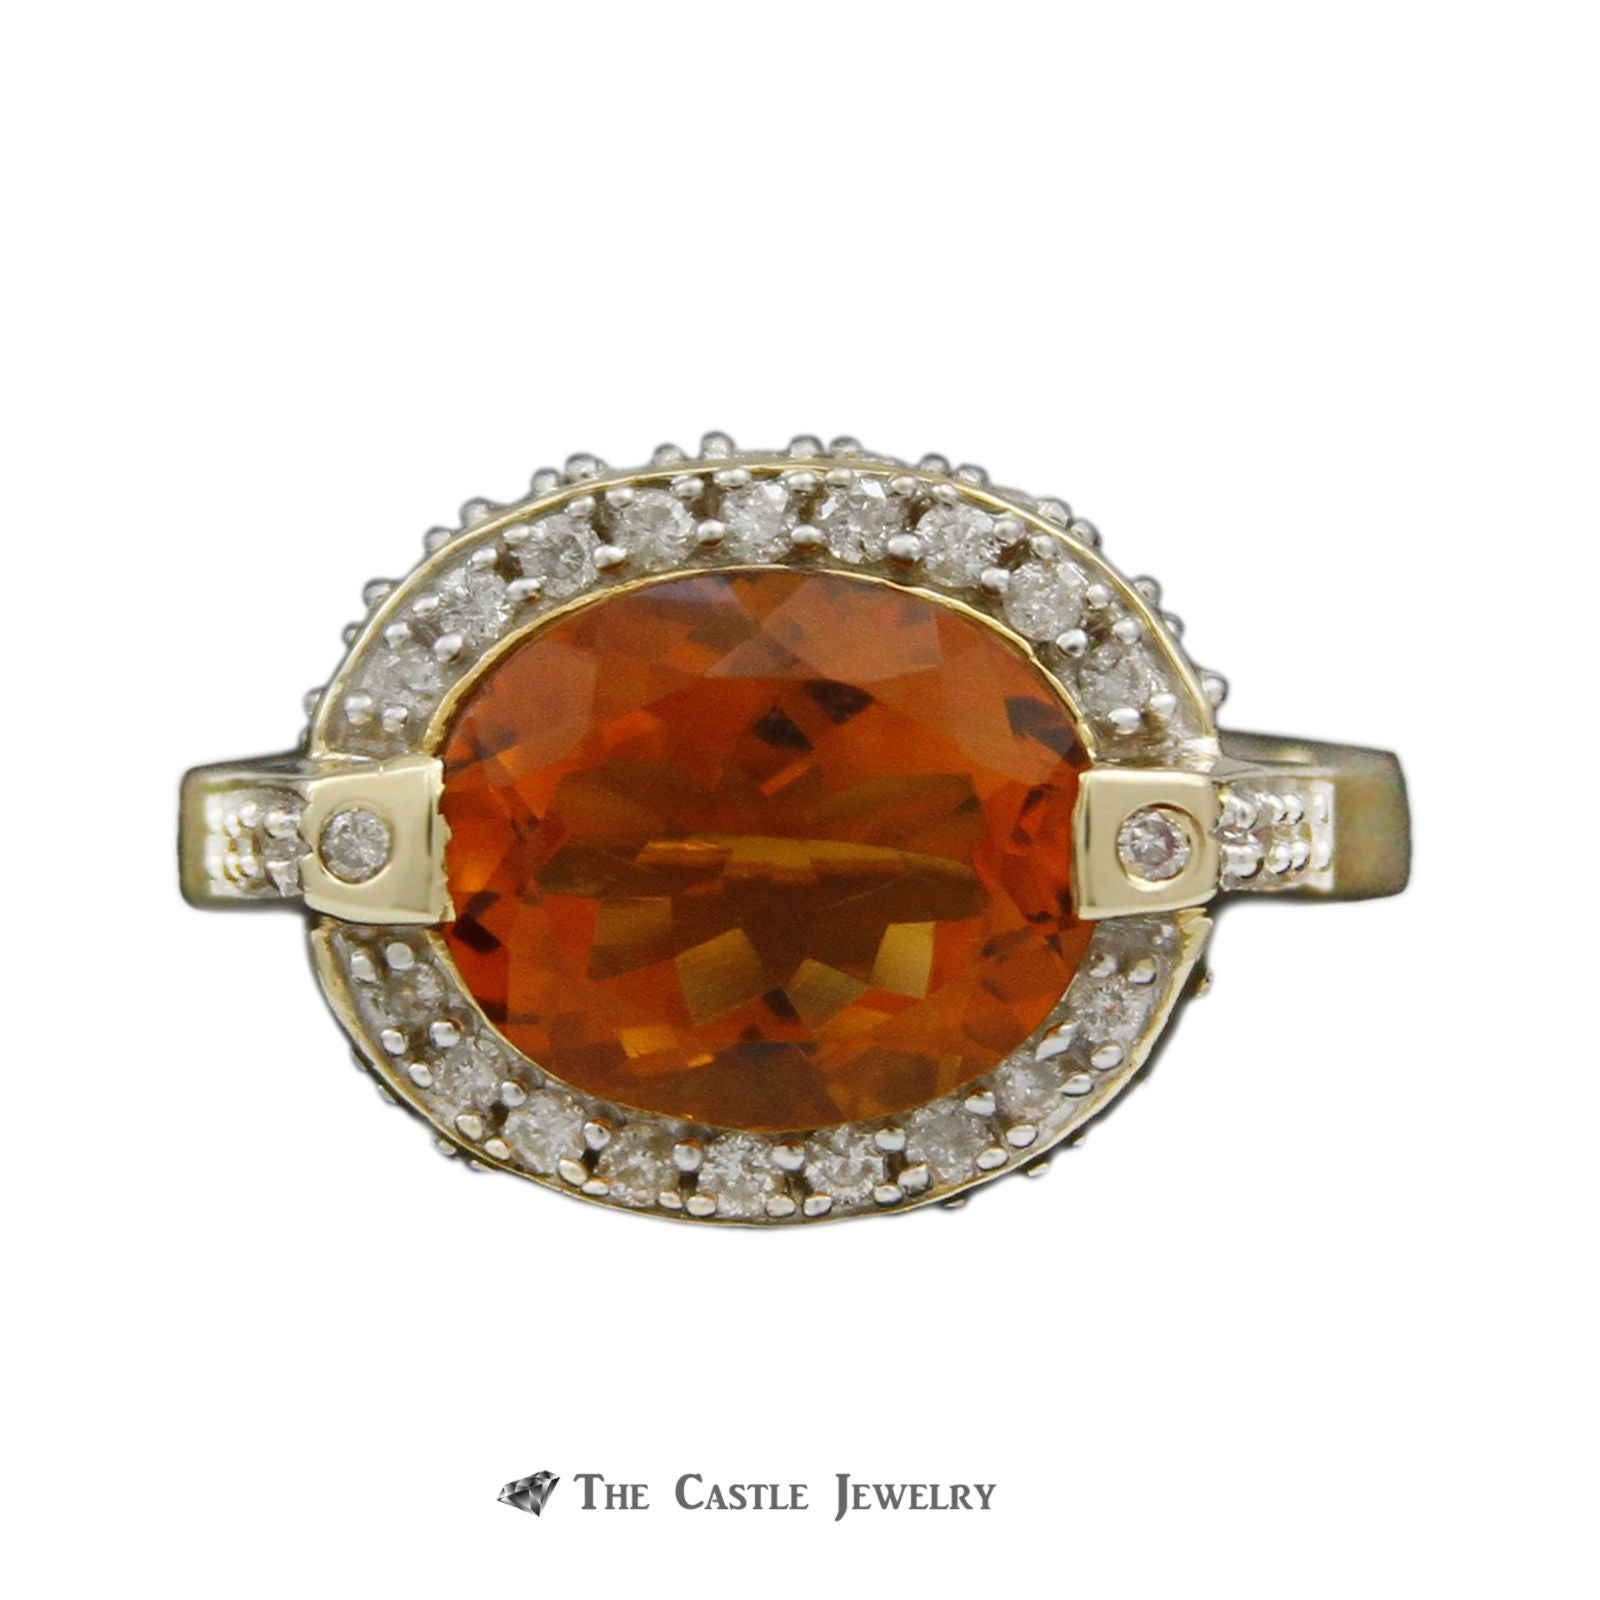 Oval Citrine Ring w/ 1/2cttw Diamond Bezel & Cathedral Mounting in 14k Yellow Gold